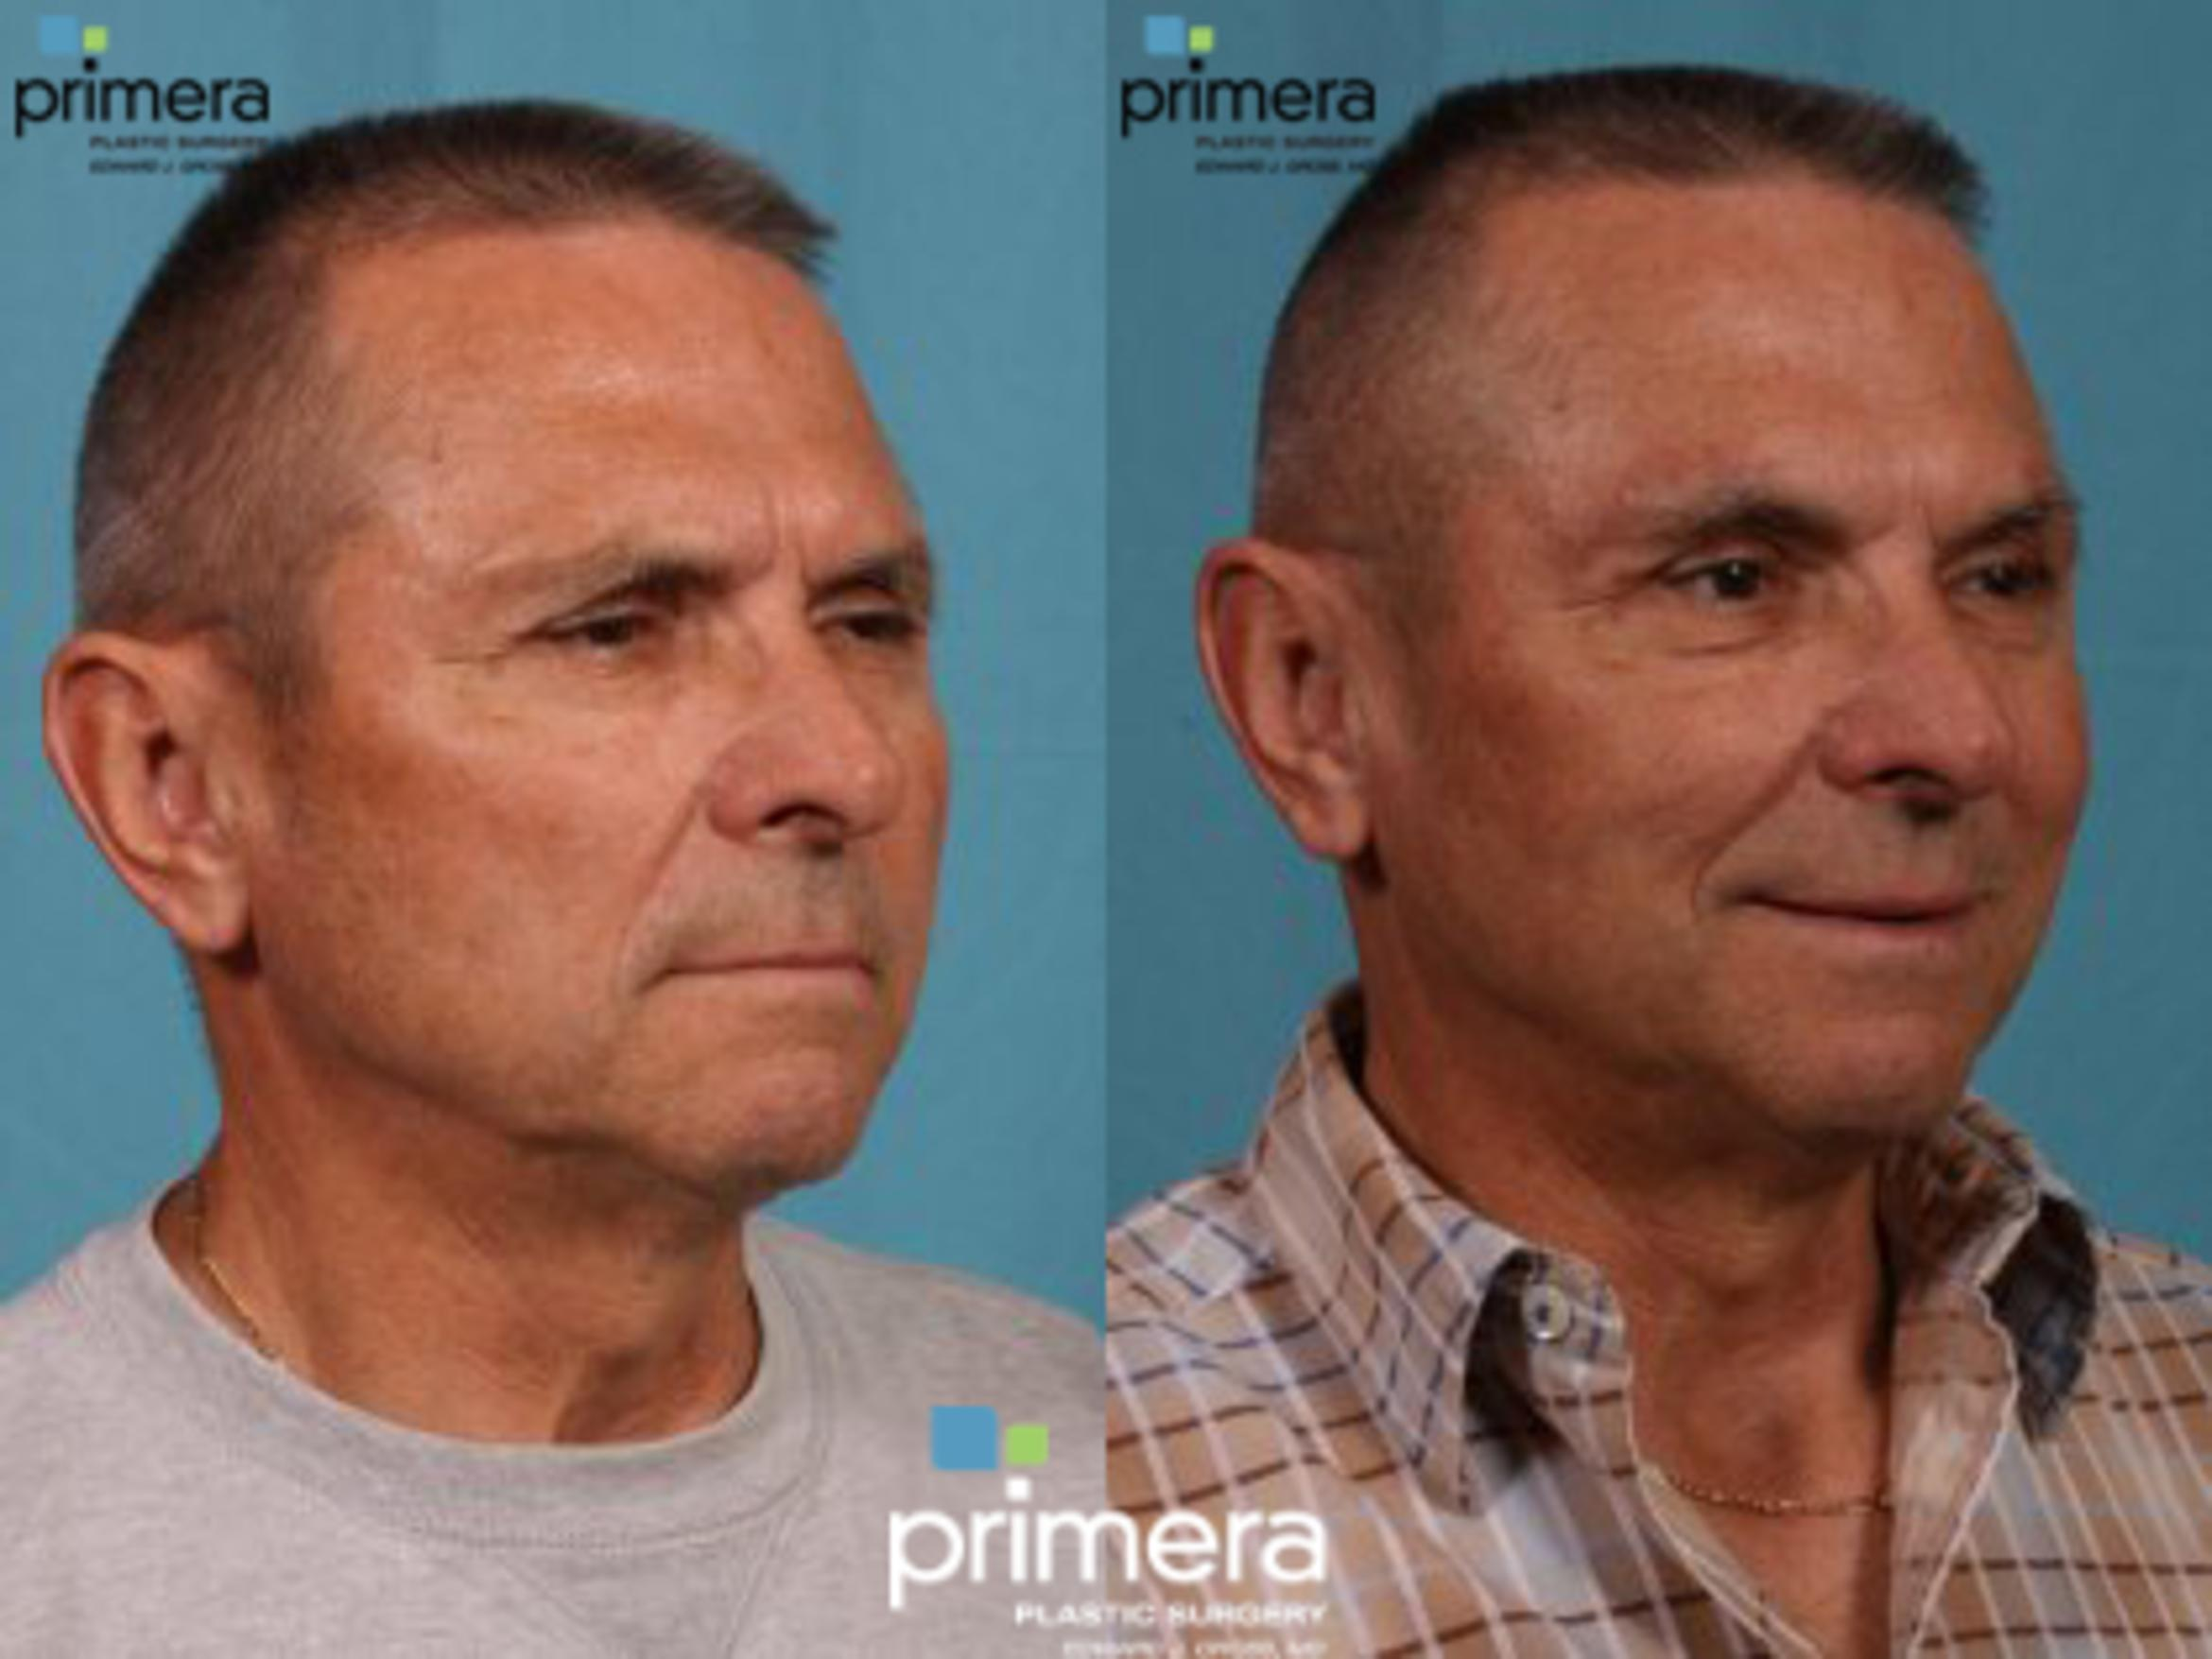 Blepharoplasty Before & After Photo | Orlando, Florida | Primera Plastic Surgery